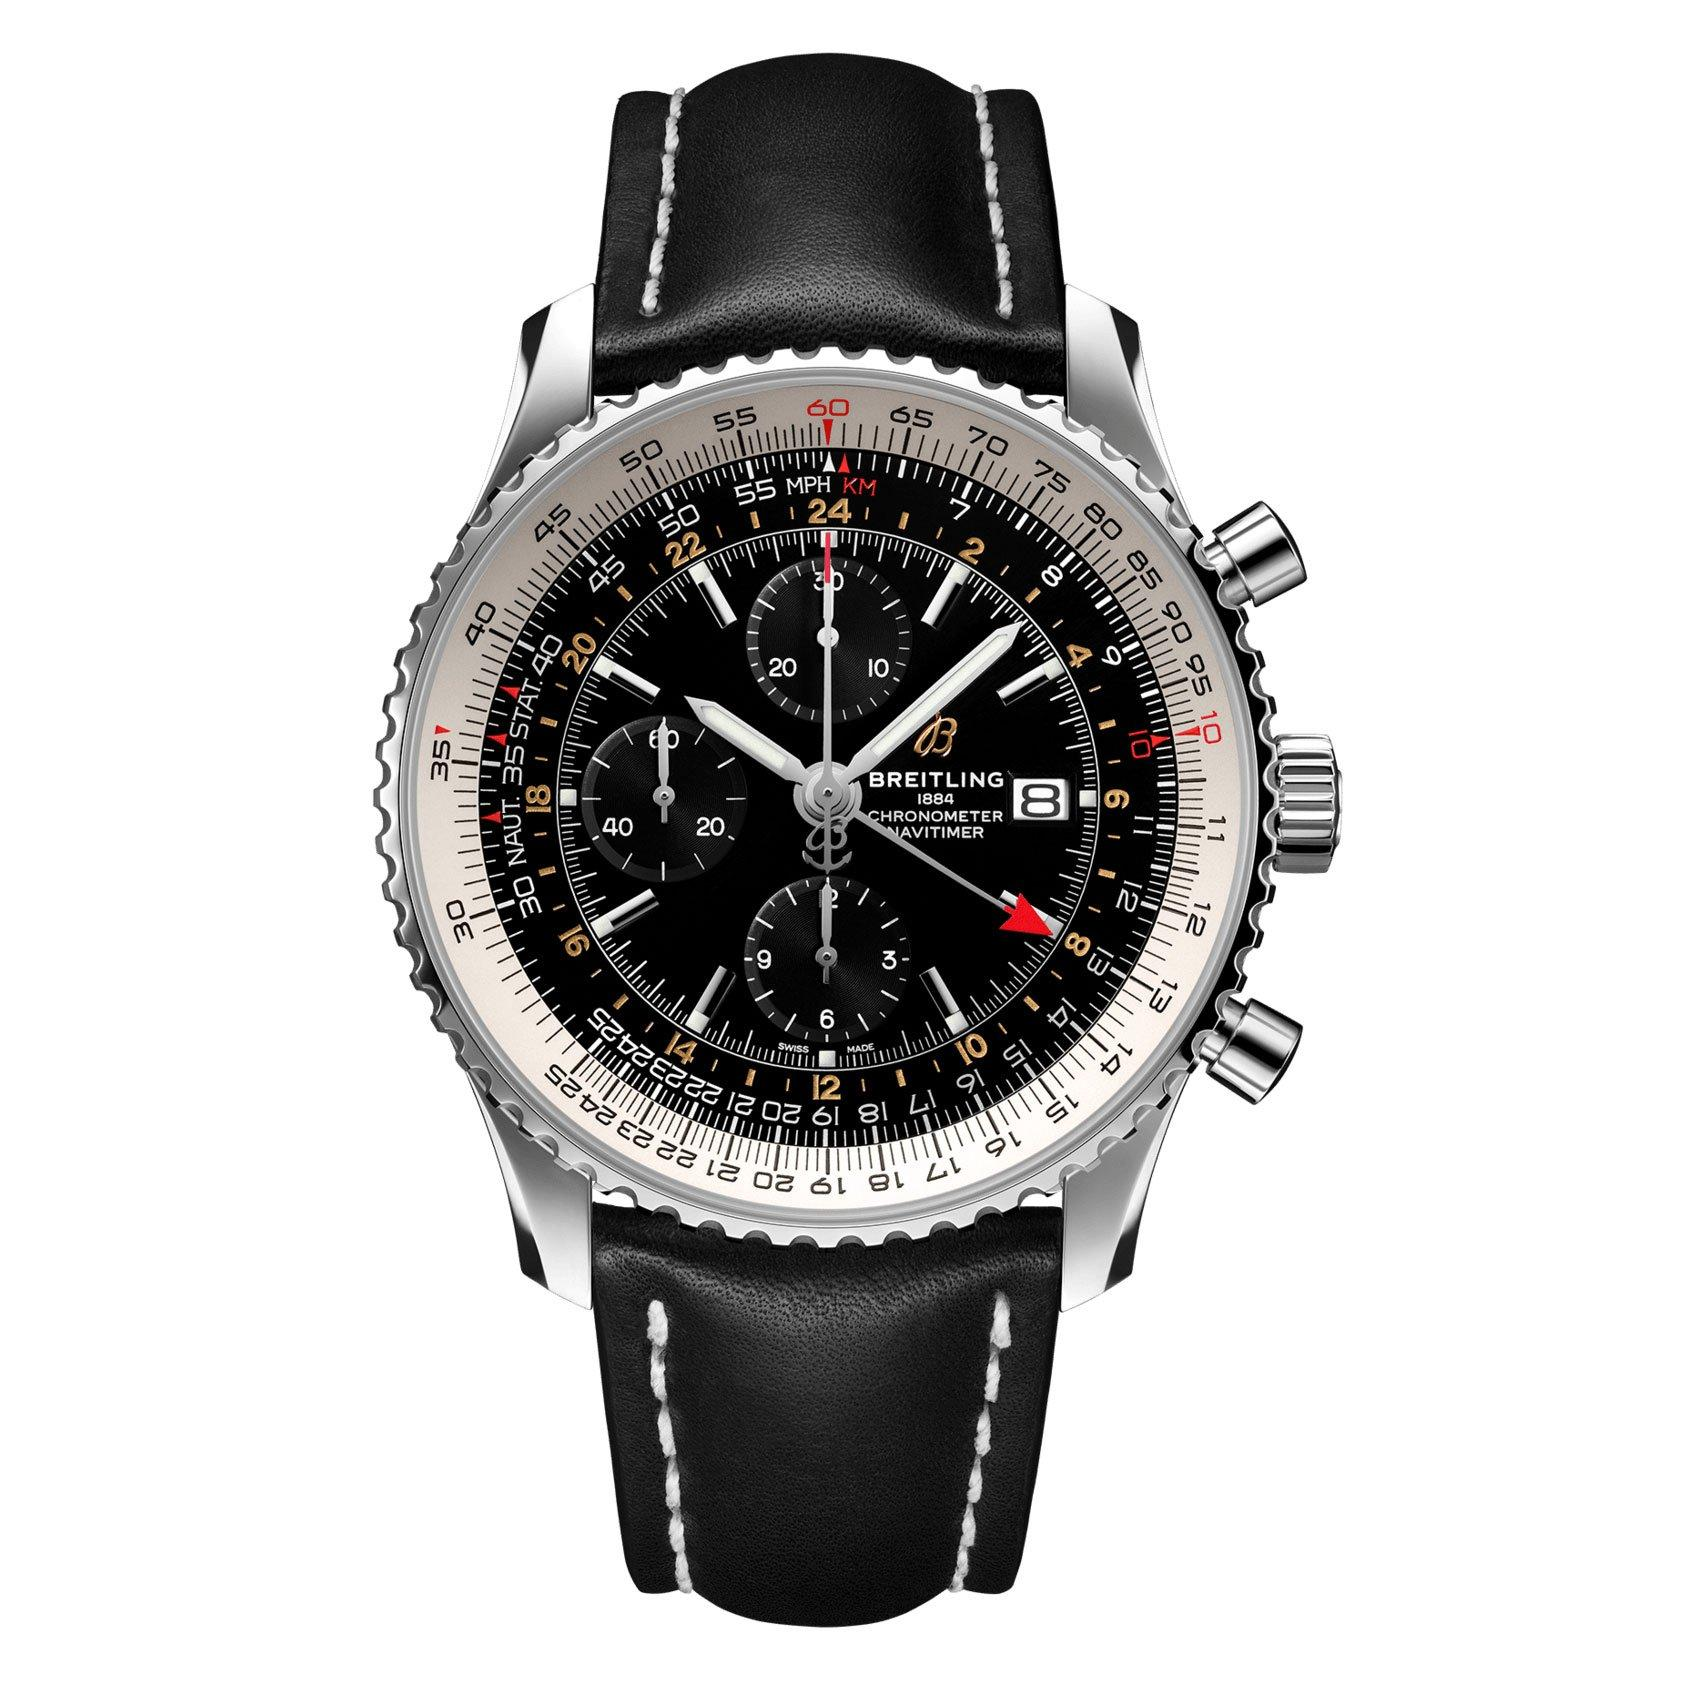 Breitling Navitimer World 46 Automatic Chronograph Men's Watch